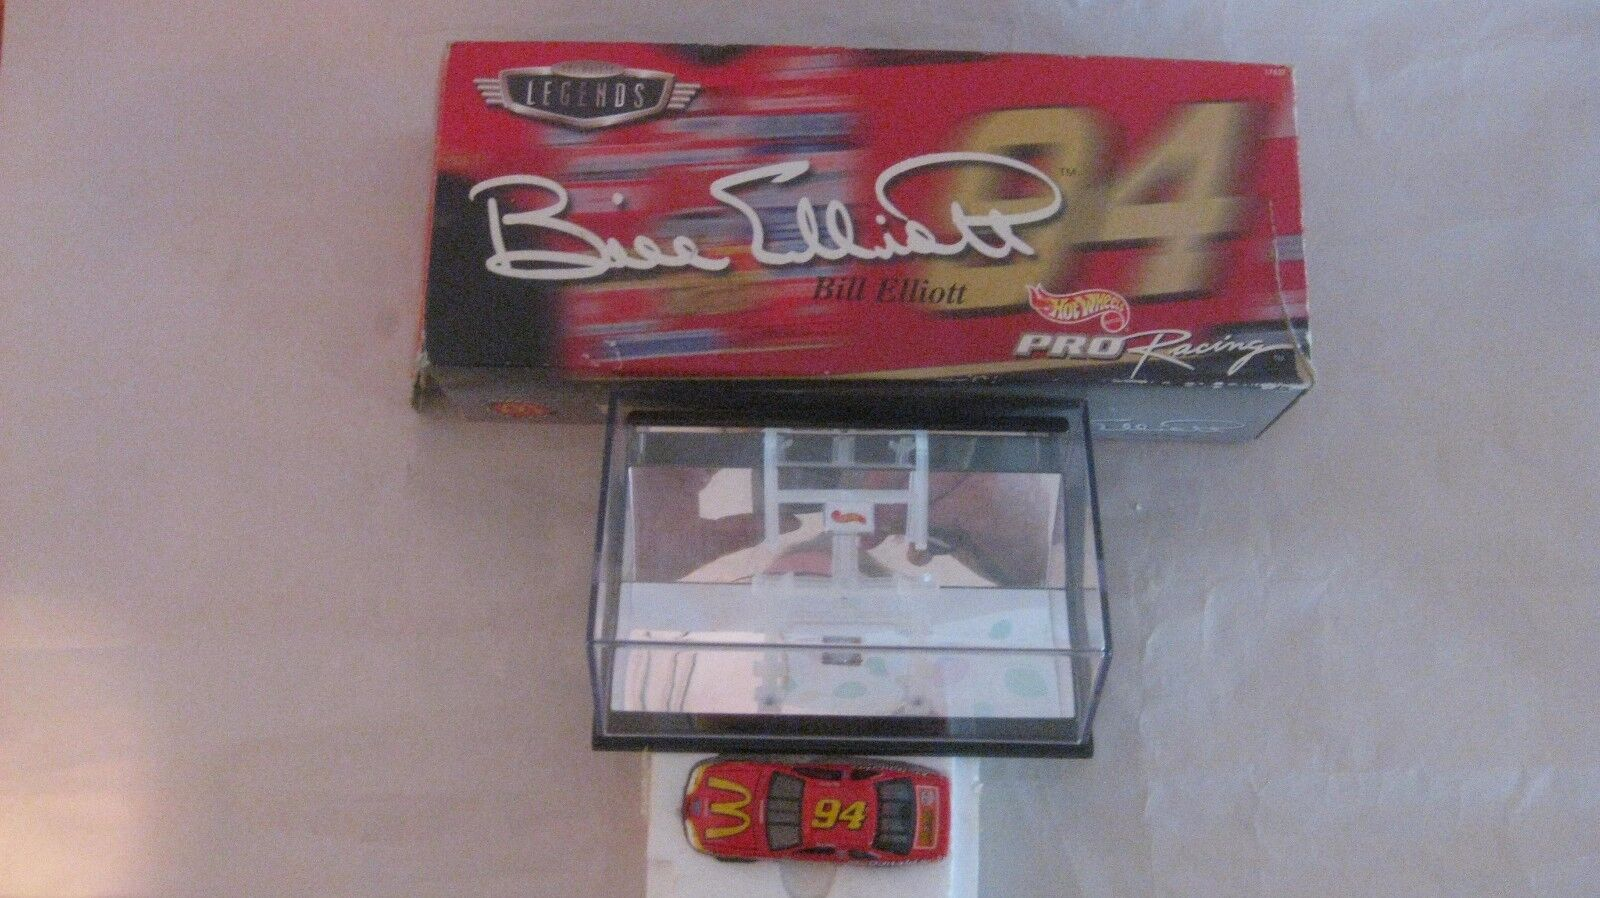 Nascar Bill Elliott Hot Wheels Leggende 164 Scala Diecast da Mattel 1997 dc1162